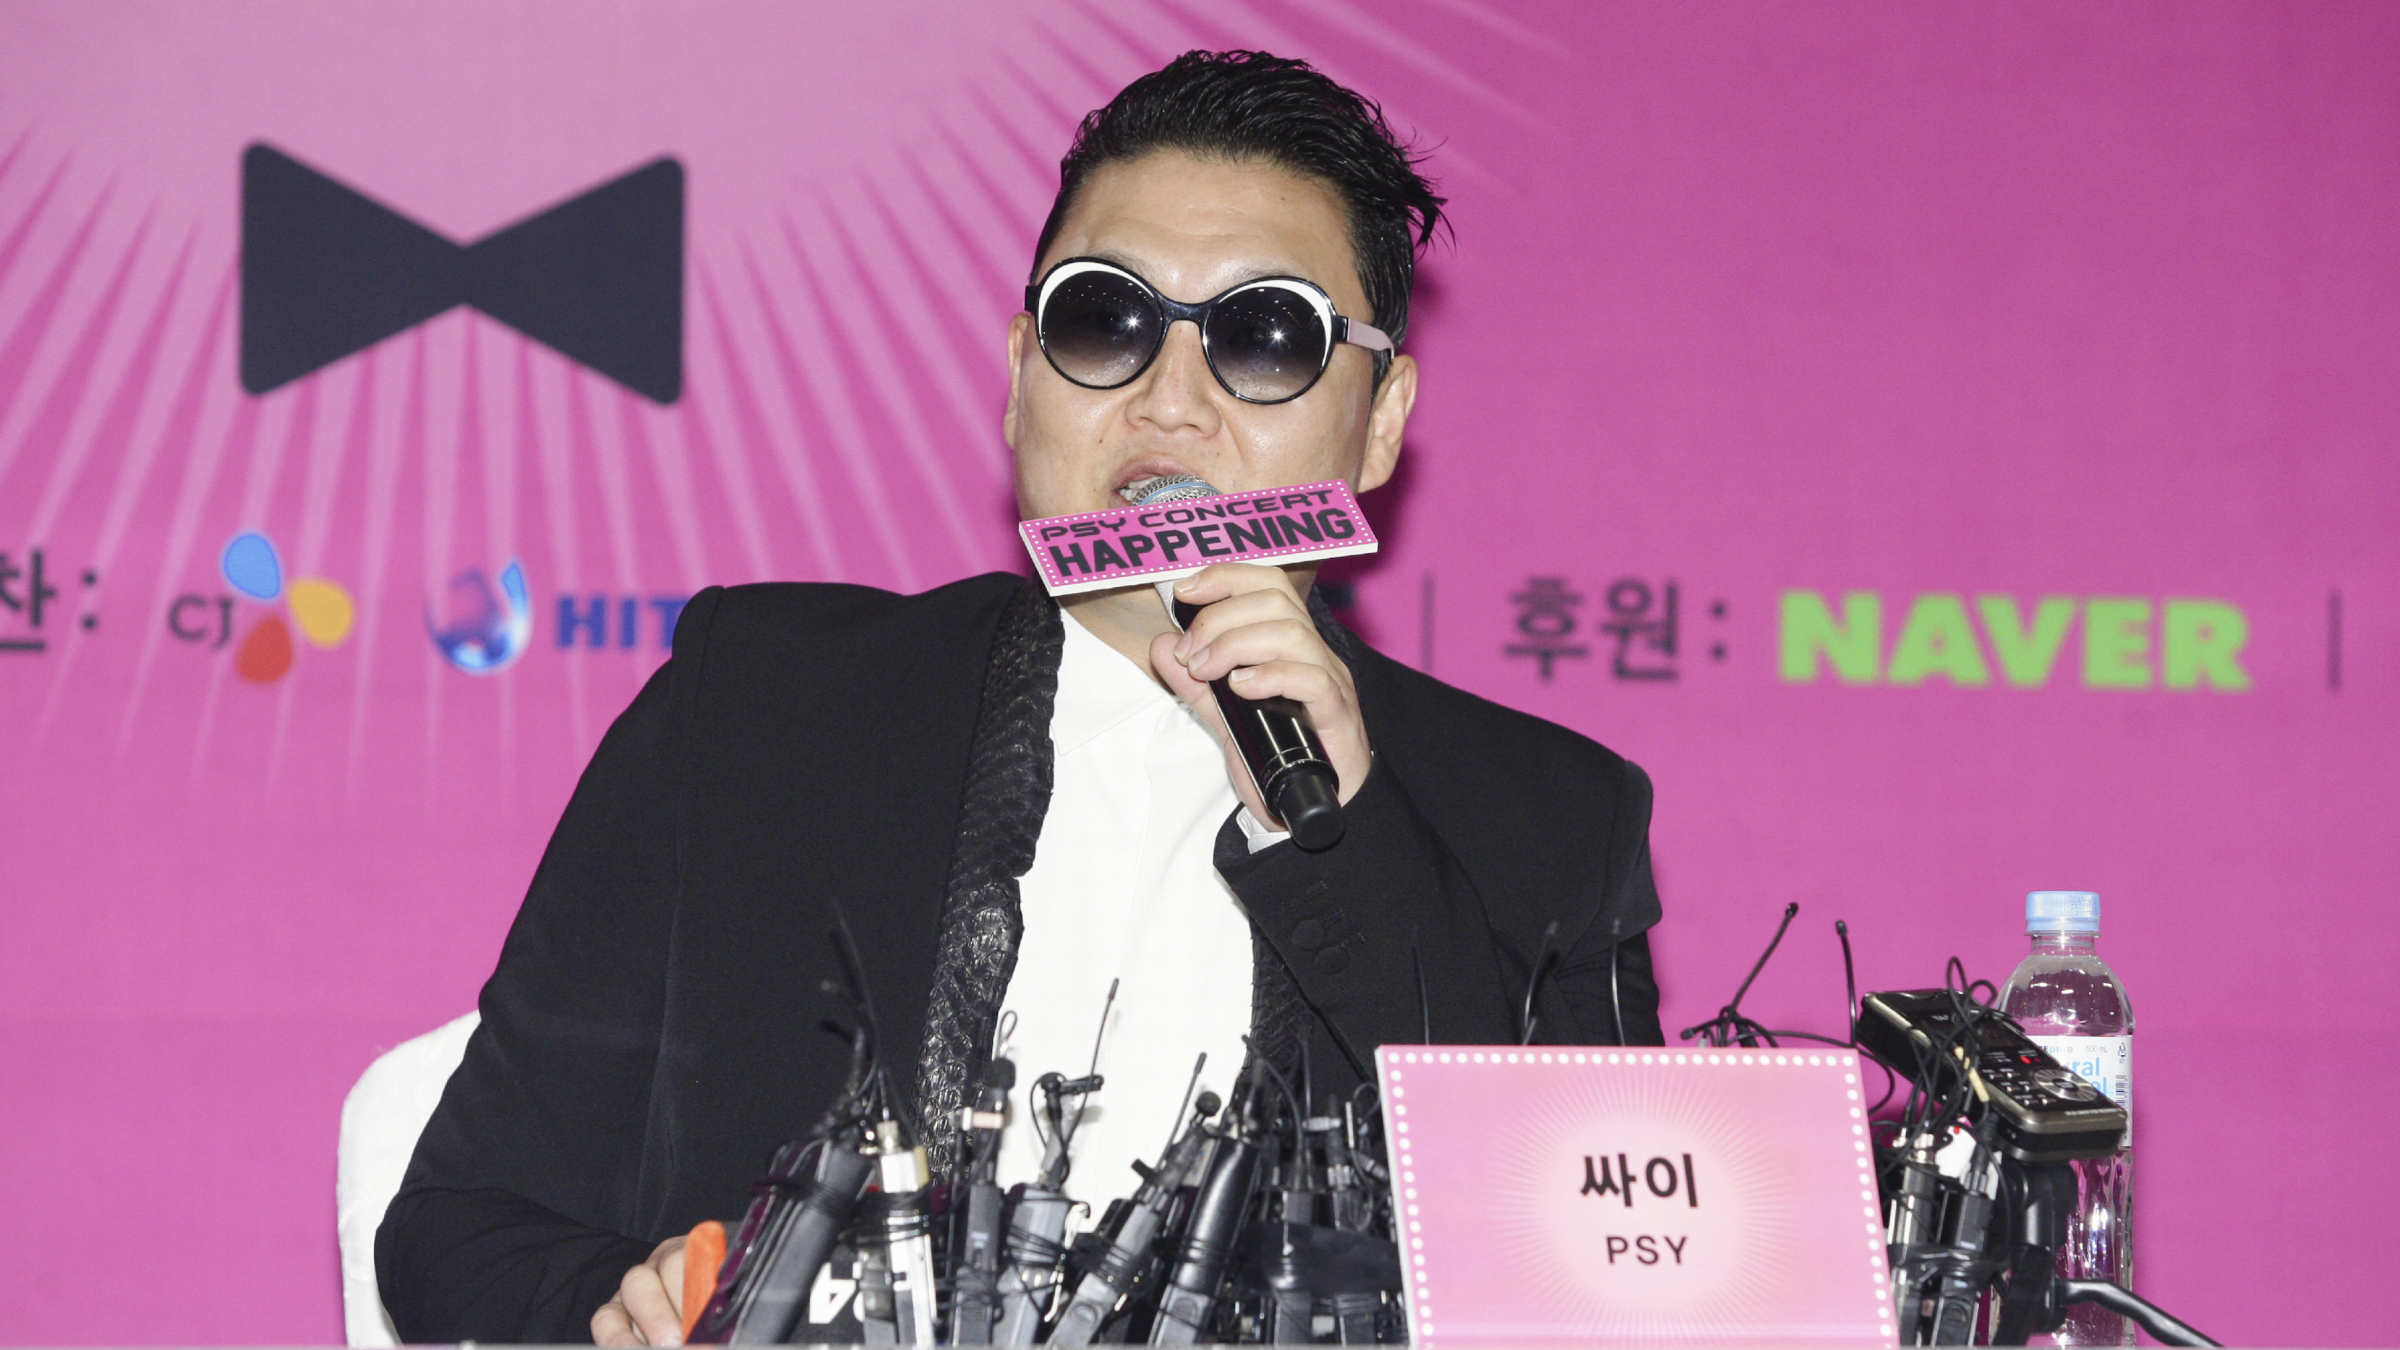 PSY at press conference